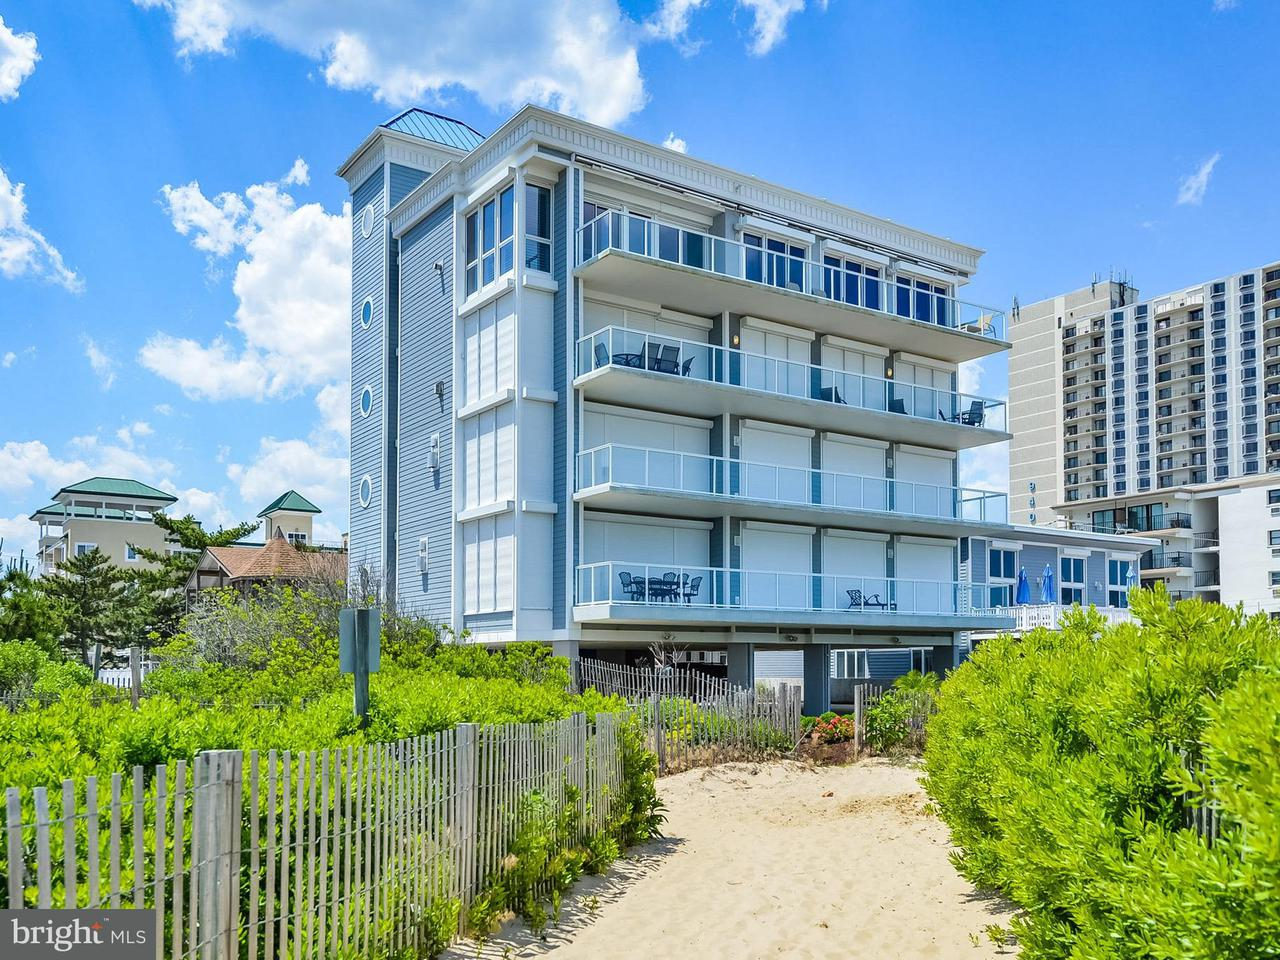 Condominium for Sale at 4 92ND ST #IV ST REGIS 4 92ND ST #IV ST REGIS Ocean City, Maryland 21842 United States